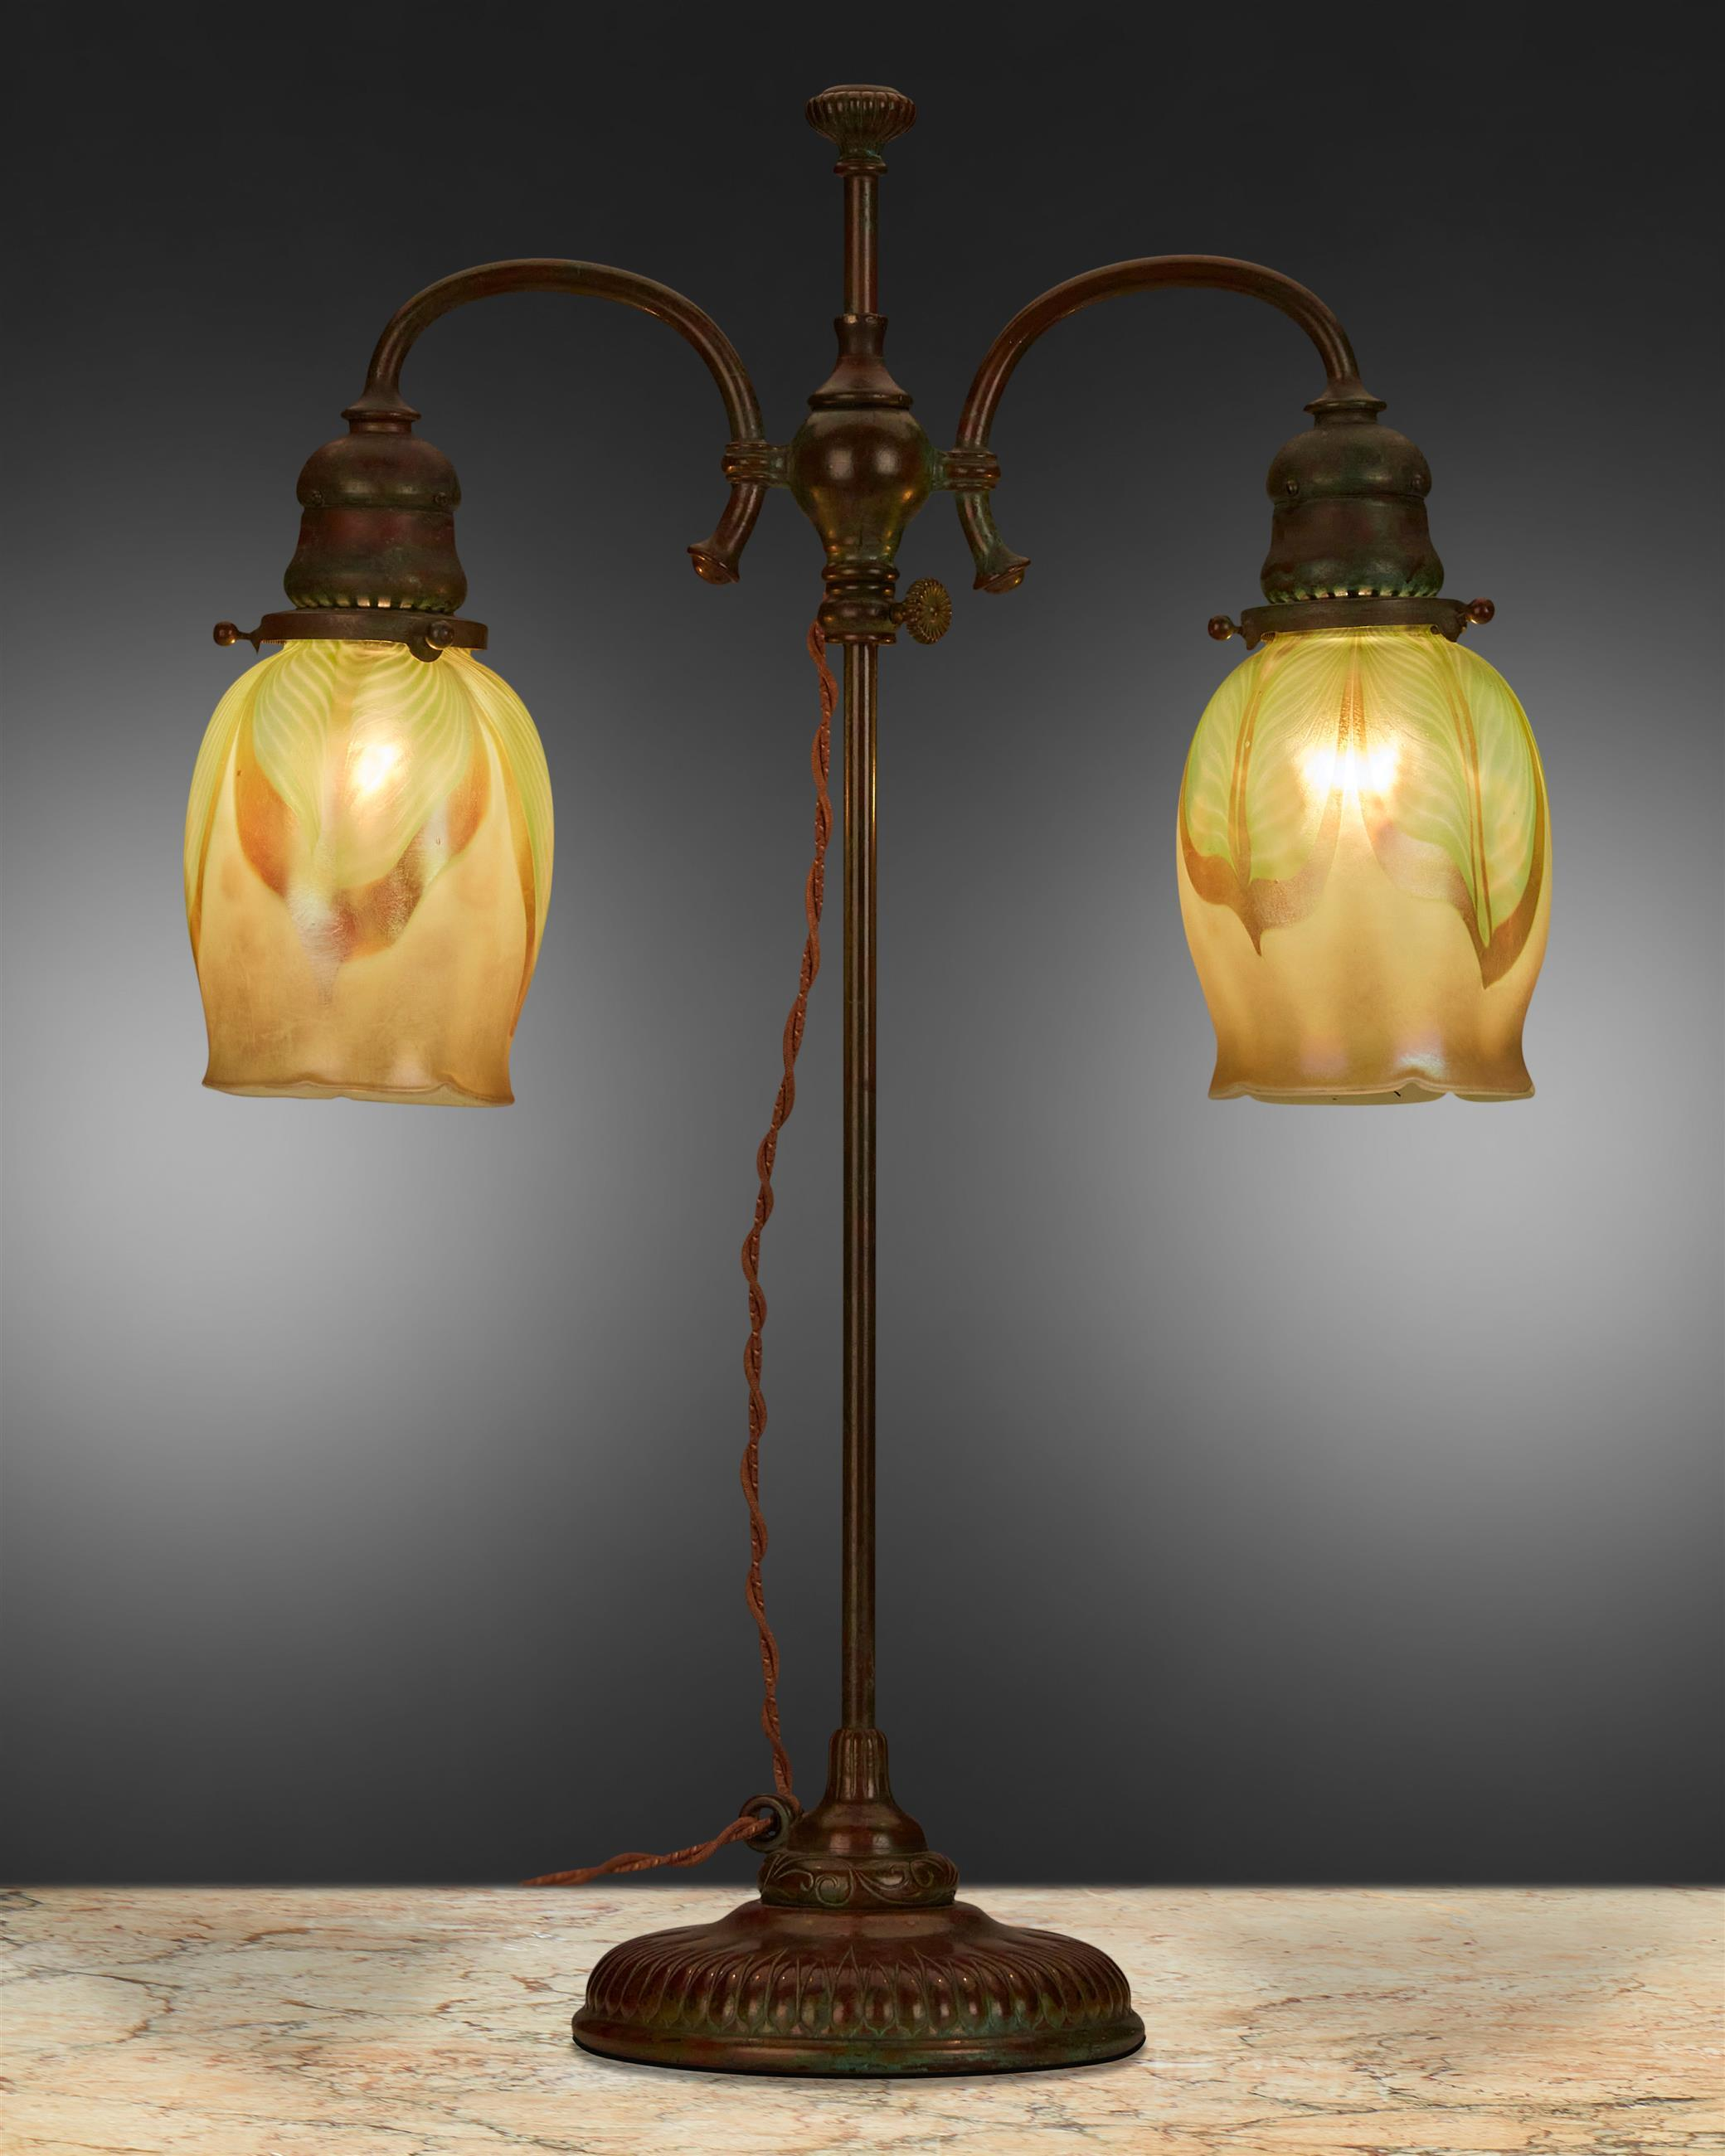 A Tiffany Studios double-arm table lamp